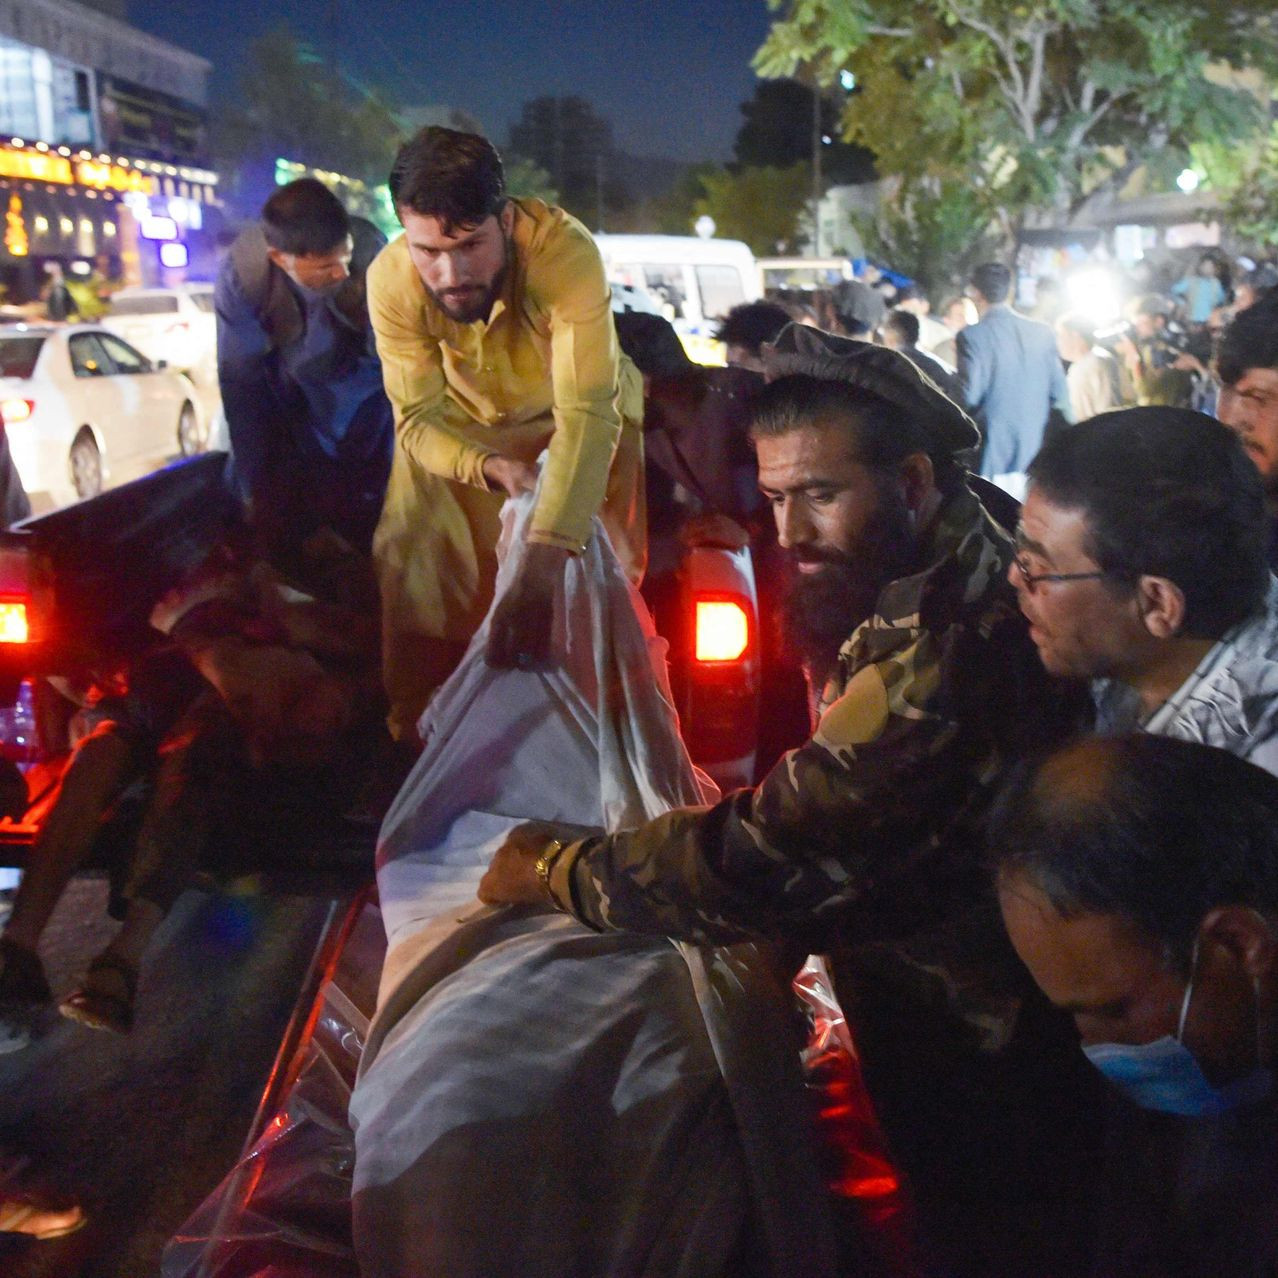 Update: Third explosion occurs in Kabul with at least 60 killed including 12 US marines